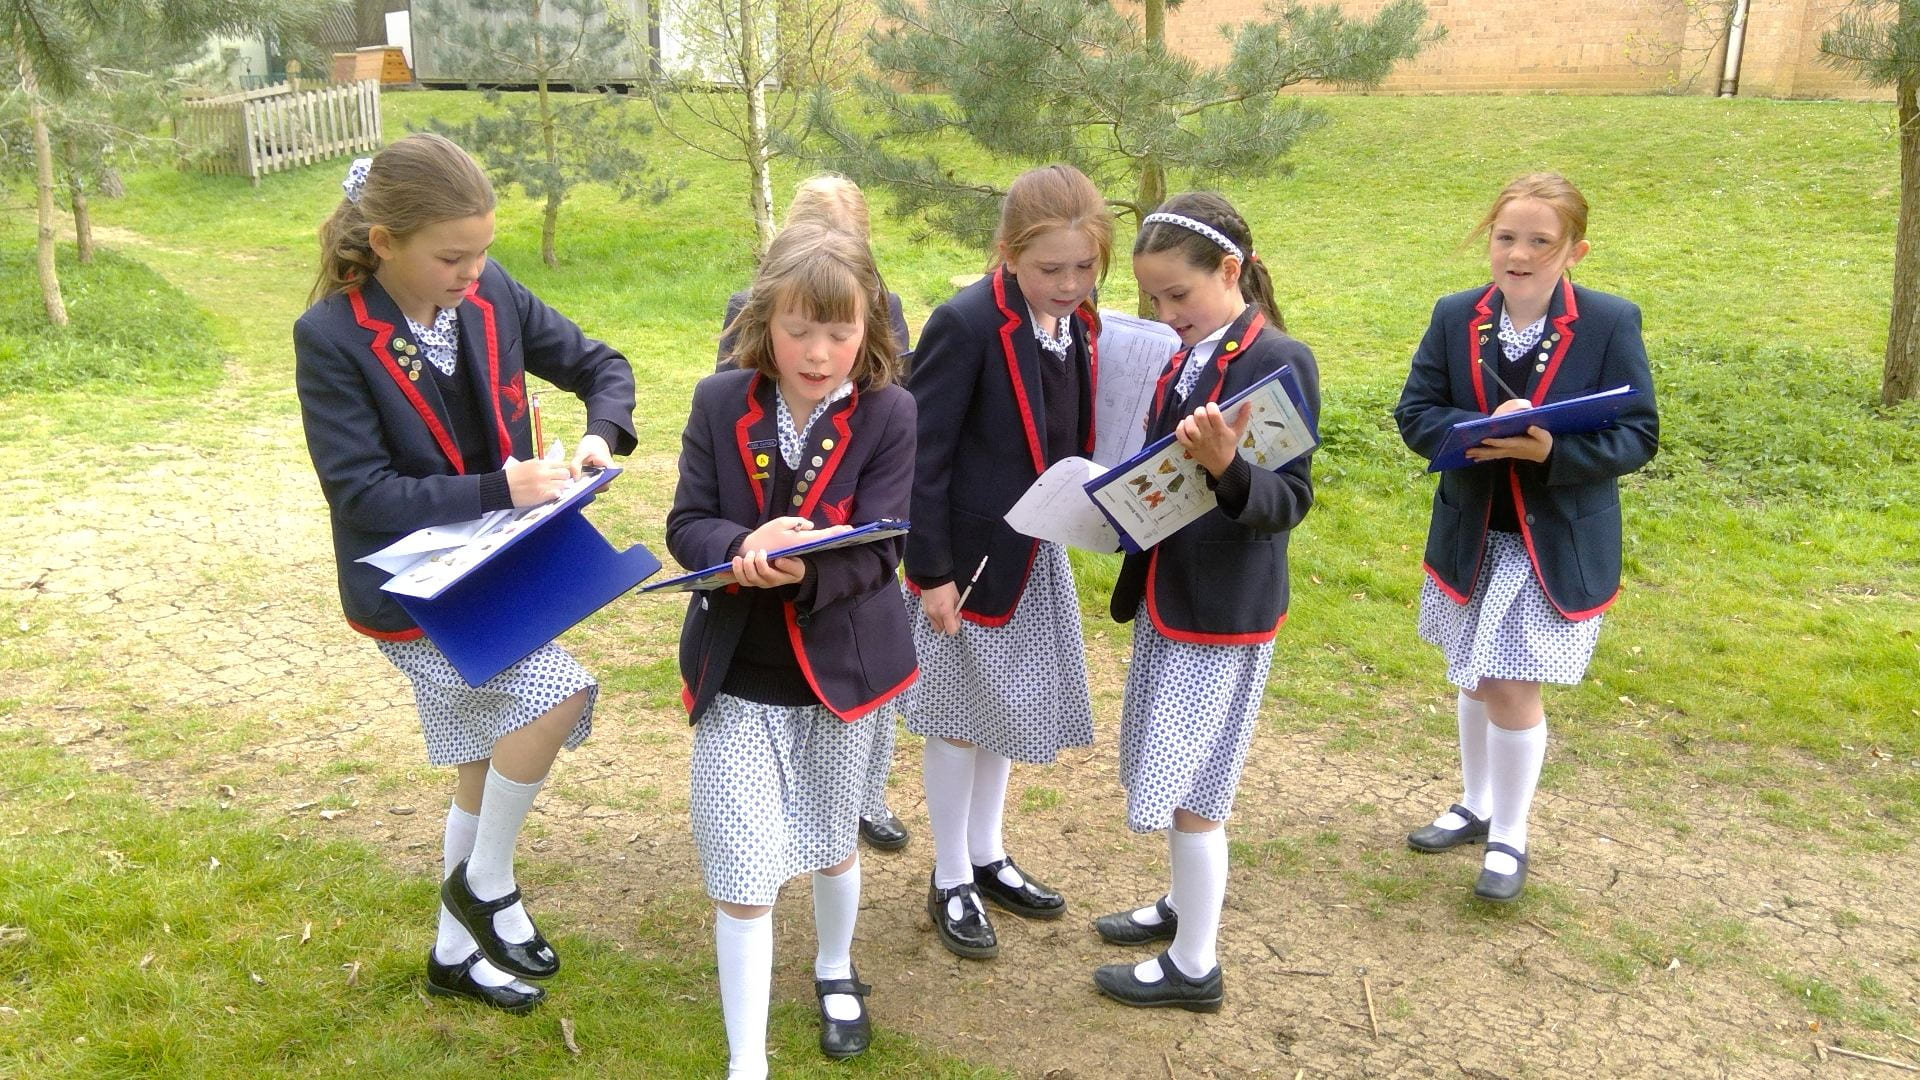 Children at SJS investigate outdoors